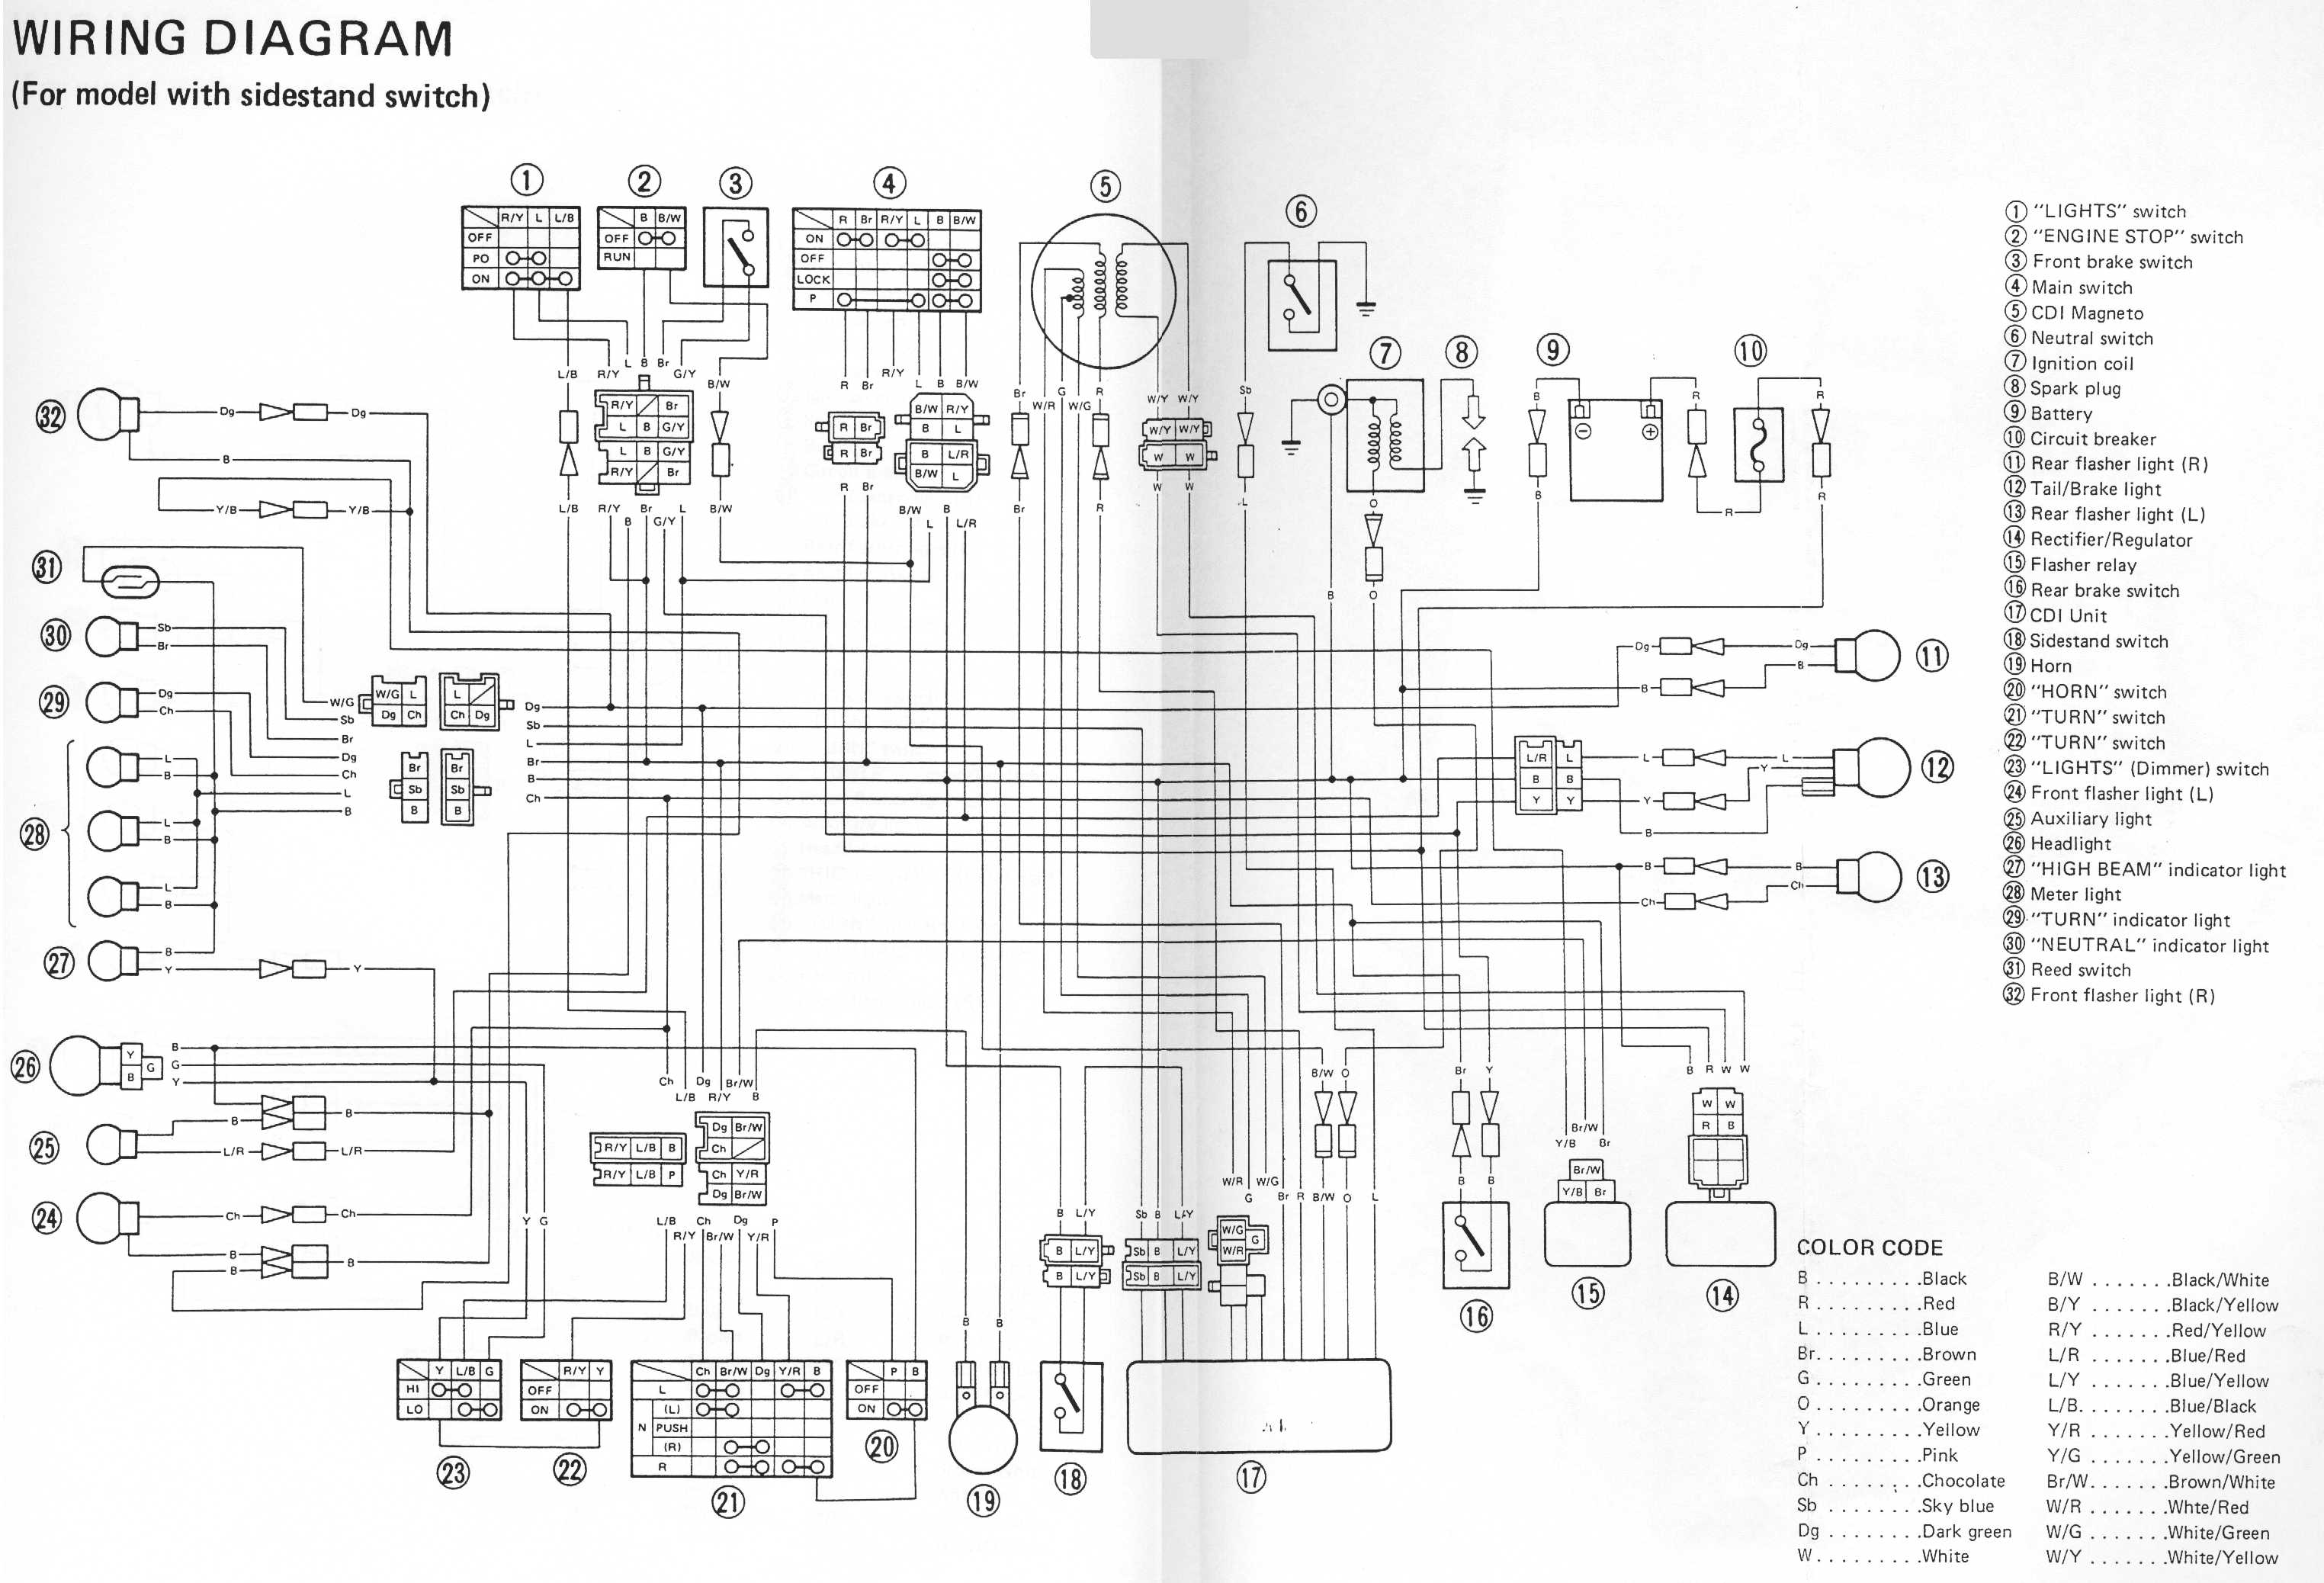 yamaha xt 250 wiring diagram kicker kisloc on 2000 v star 1100 ignition 650 ...